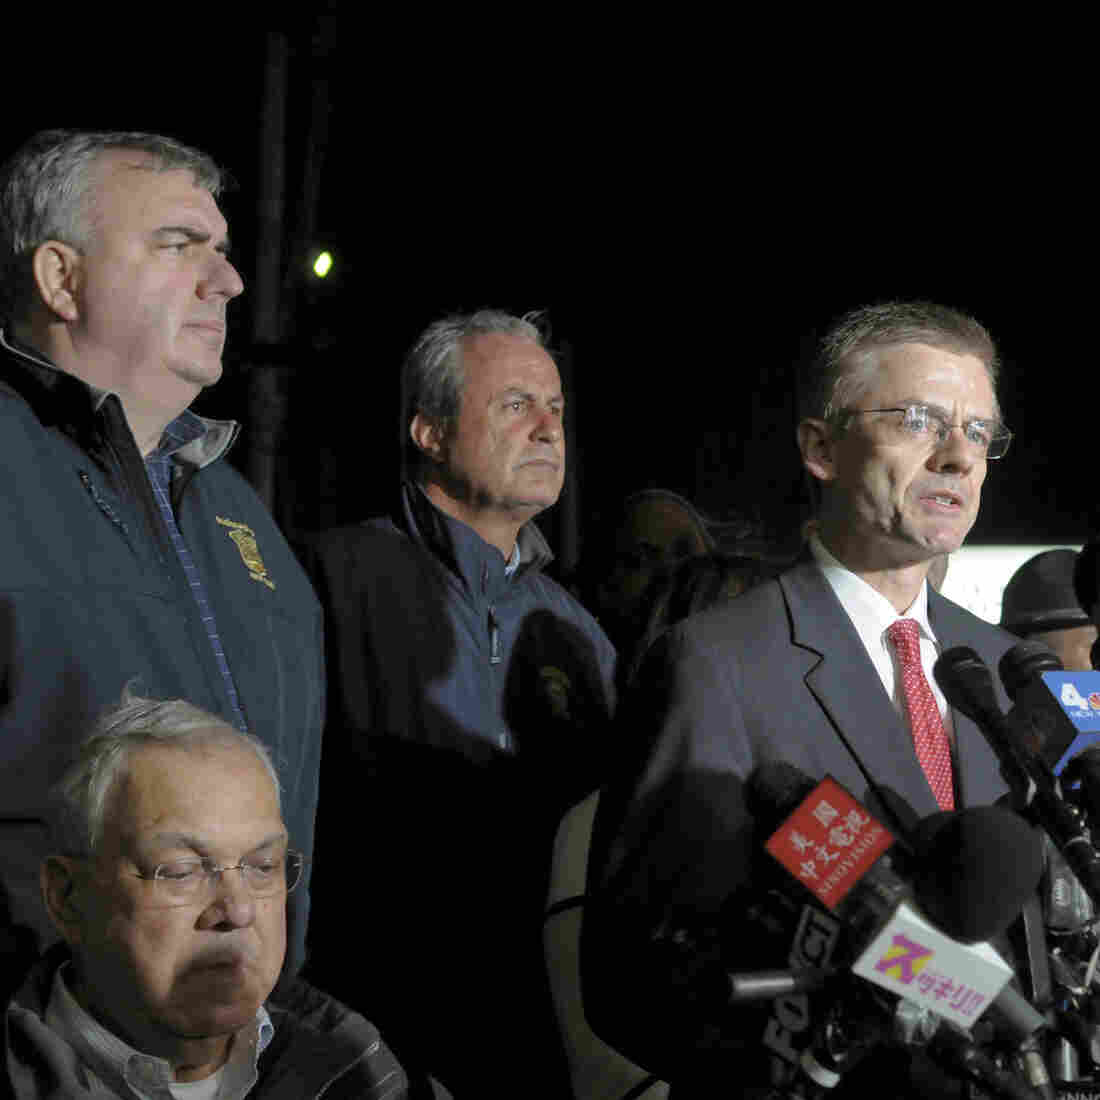 FBI Special Agent in Charge Richard DesLauriers (at the microphones), Boston Police Commissioner Edward Davis (standing, at far left) and other authorities briefing the news media on April 19. That's the day Boston bombings suspect Tamerlan Tsarnaev was killed and his brother, Dzhokhar, was captured.